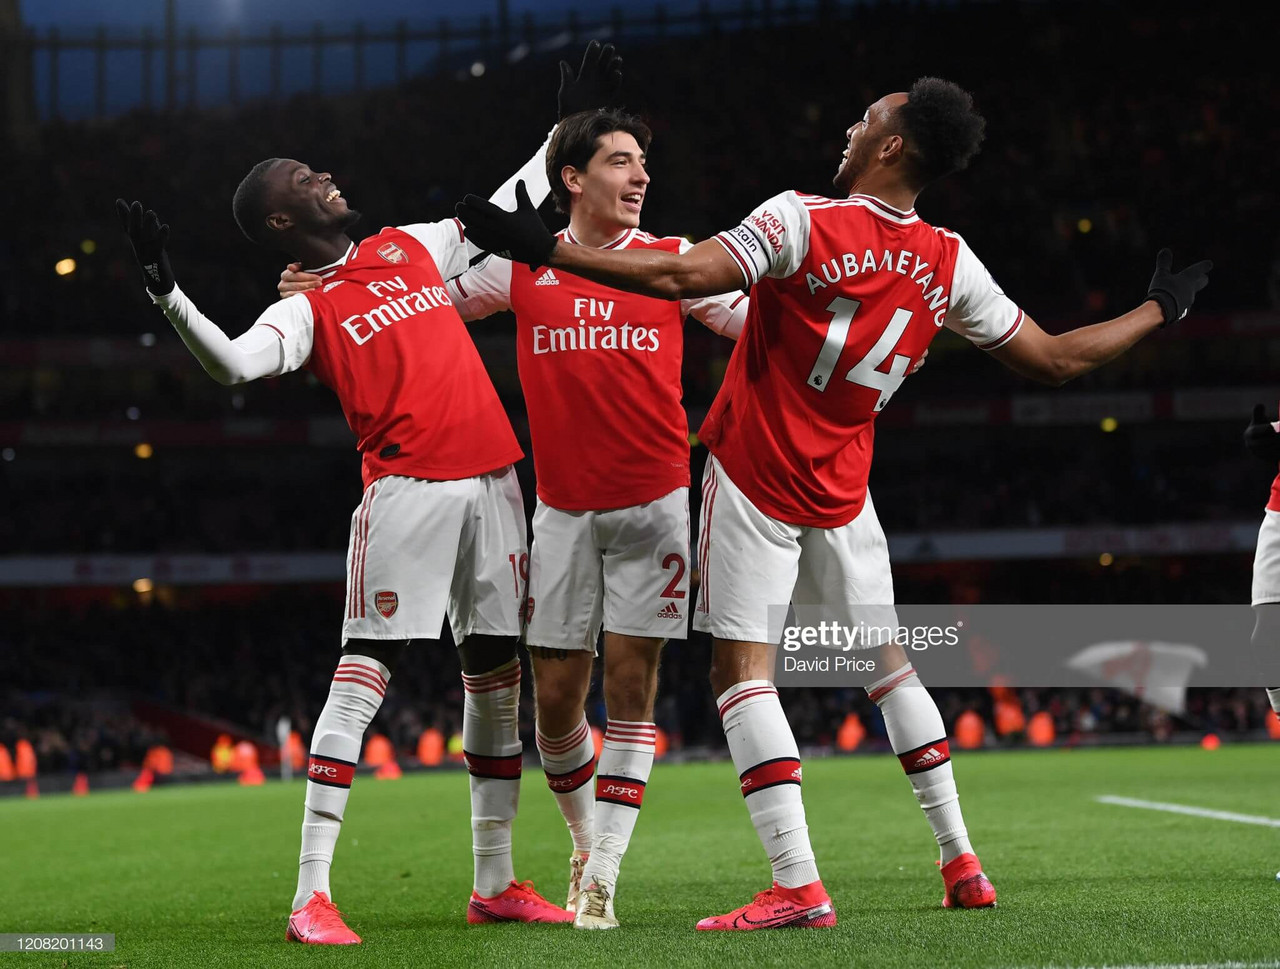 Arsenal 3-2 Everton: Mikel Arteta's Gunners triumph in thriller